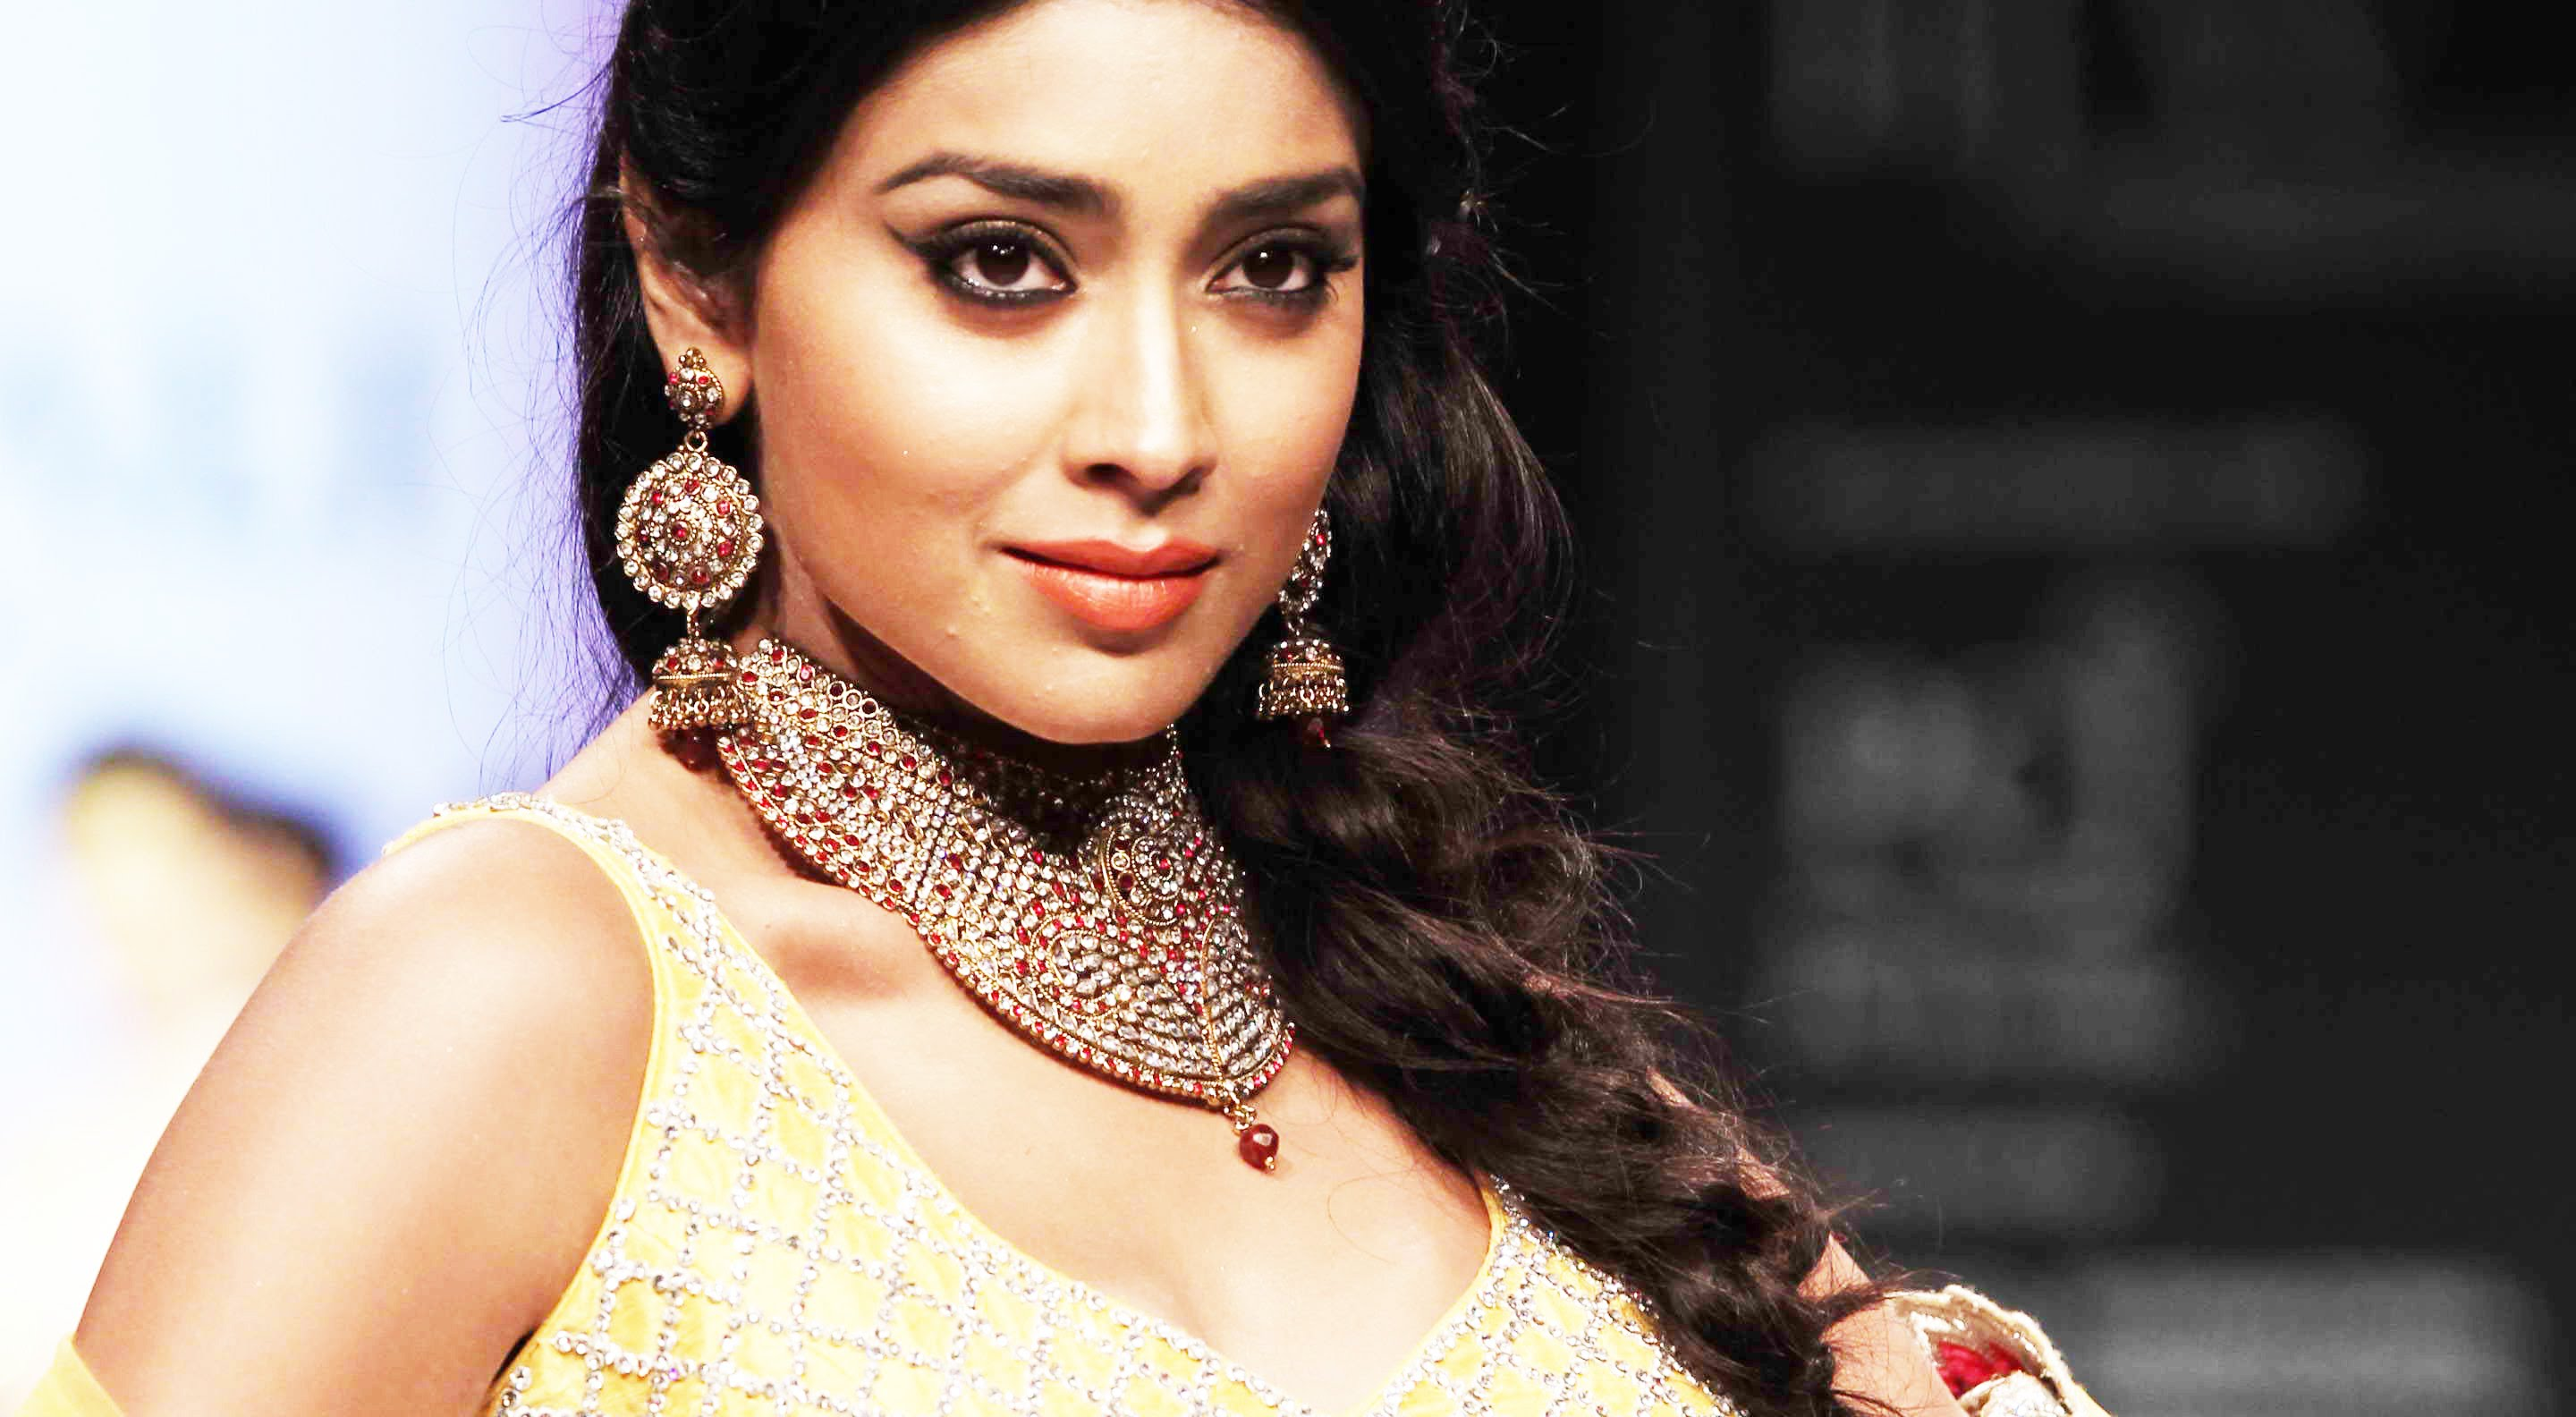 Desktop Shriya Saran Cute Look Free Mobile Photos Background Hd